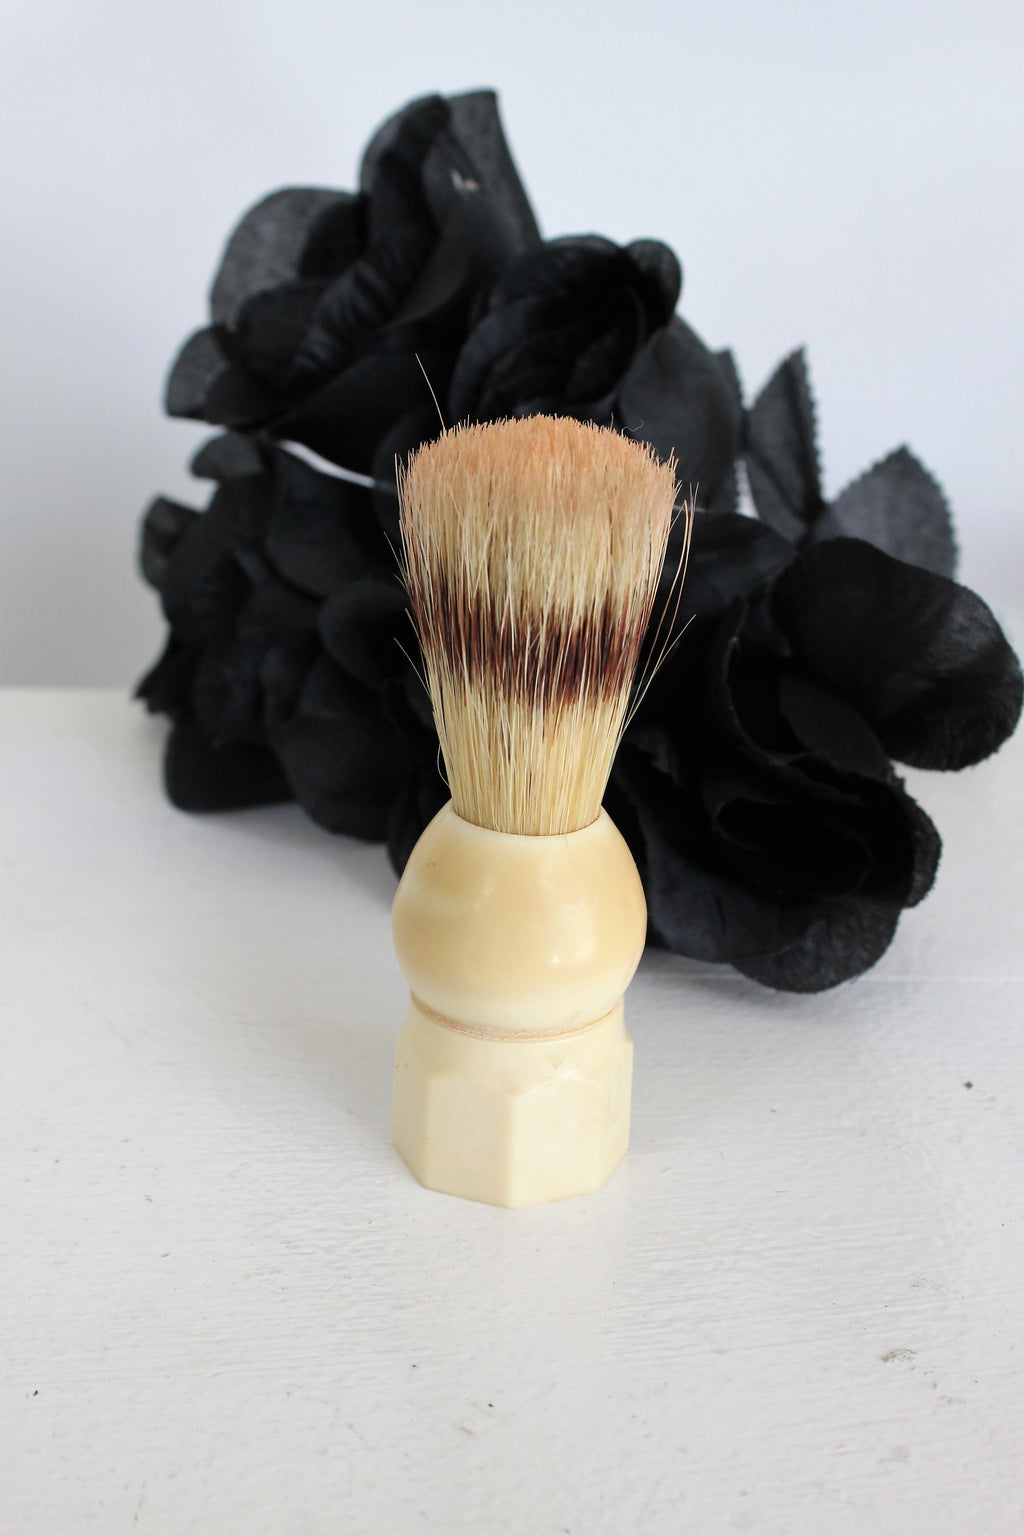 Vintage 1950s Made Rite 761 Boar Bristle Shaving Brush